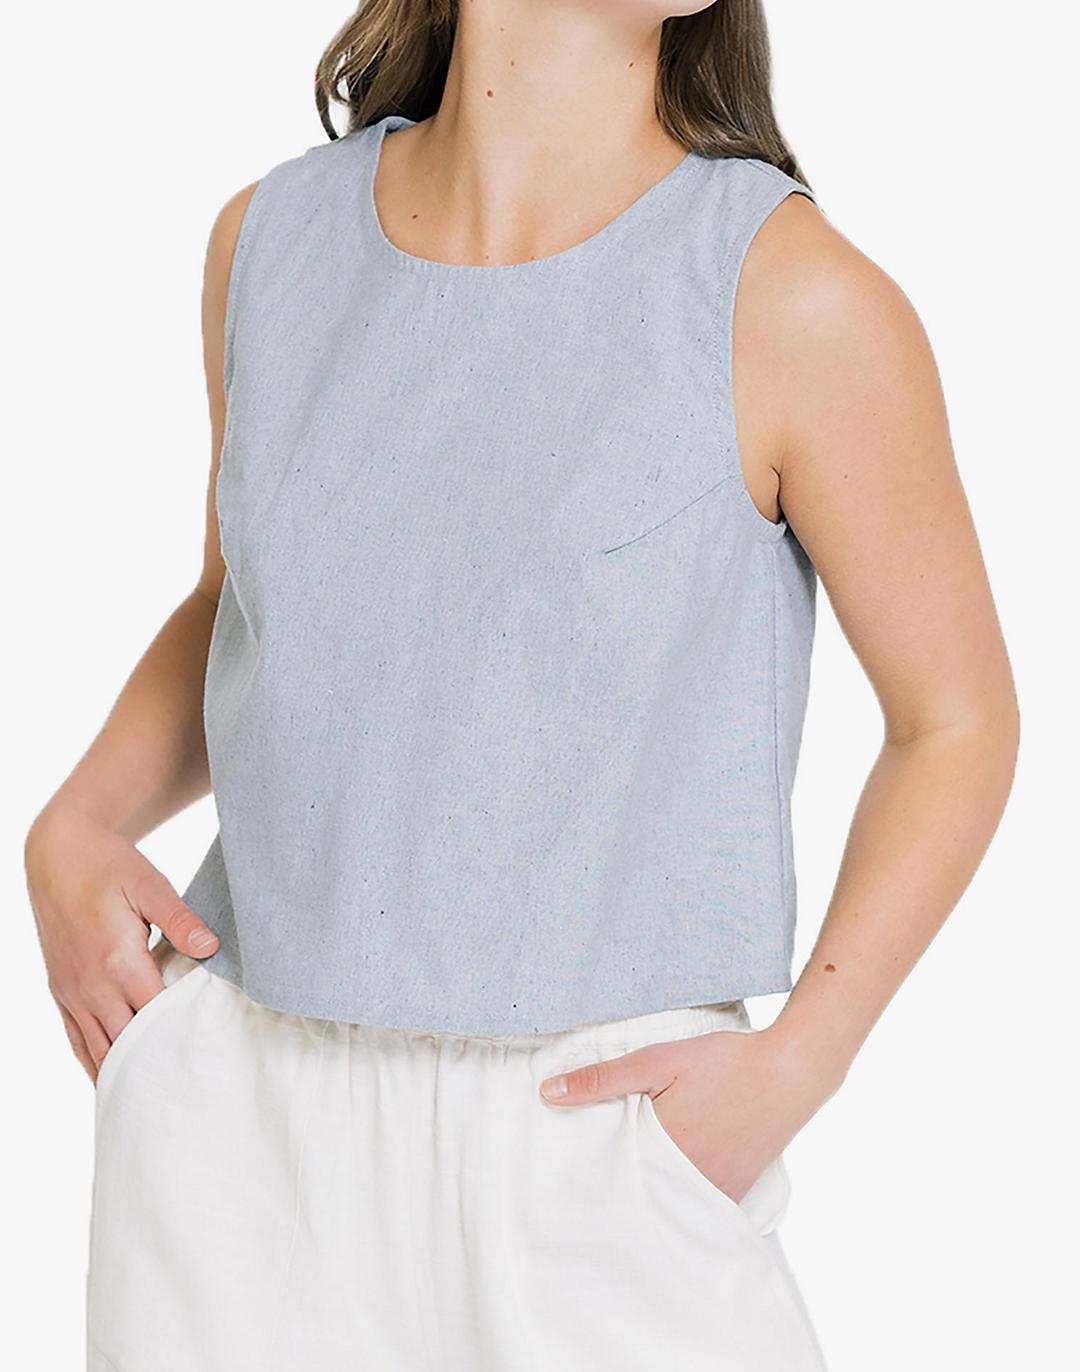 Madewell x LAUDE the Label Open-Back Tank Top